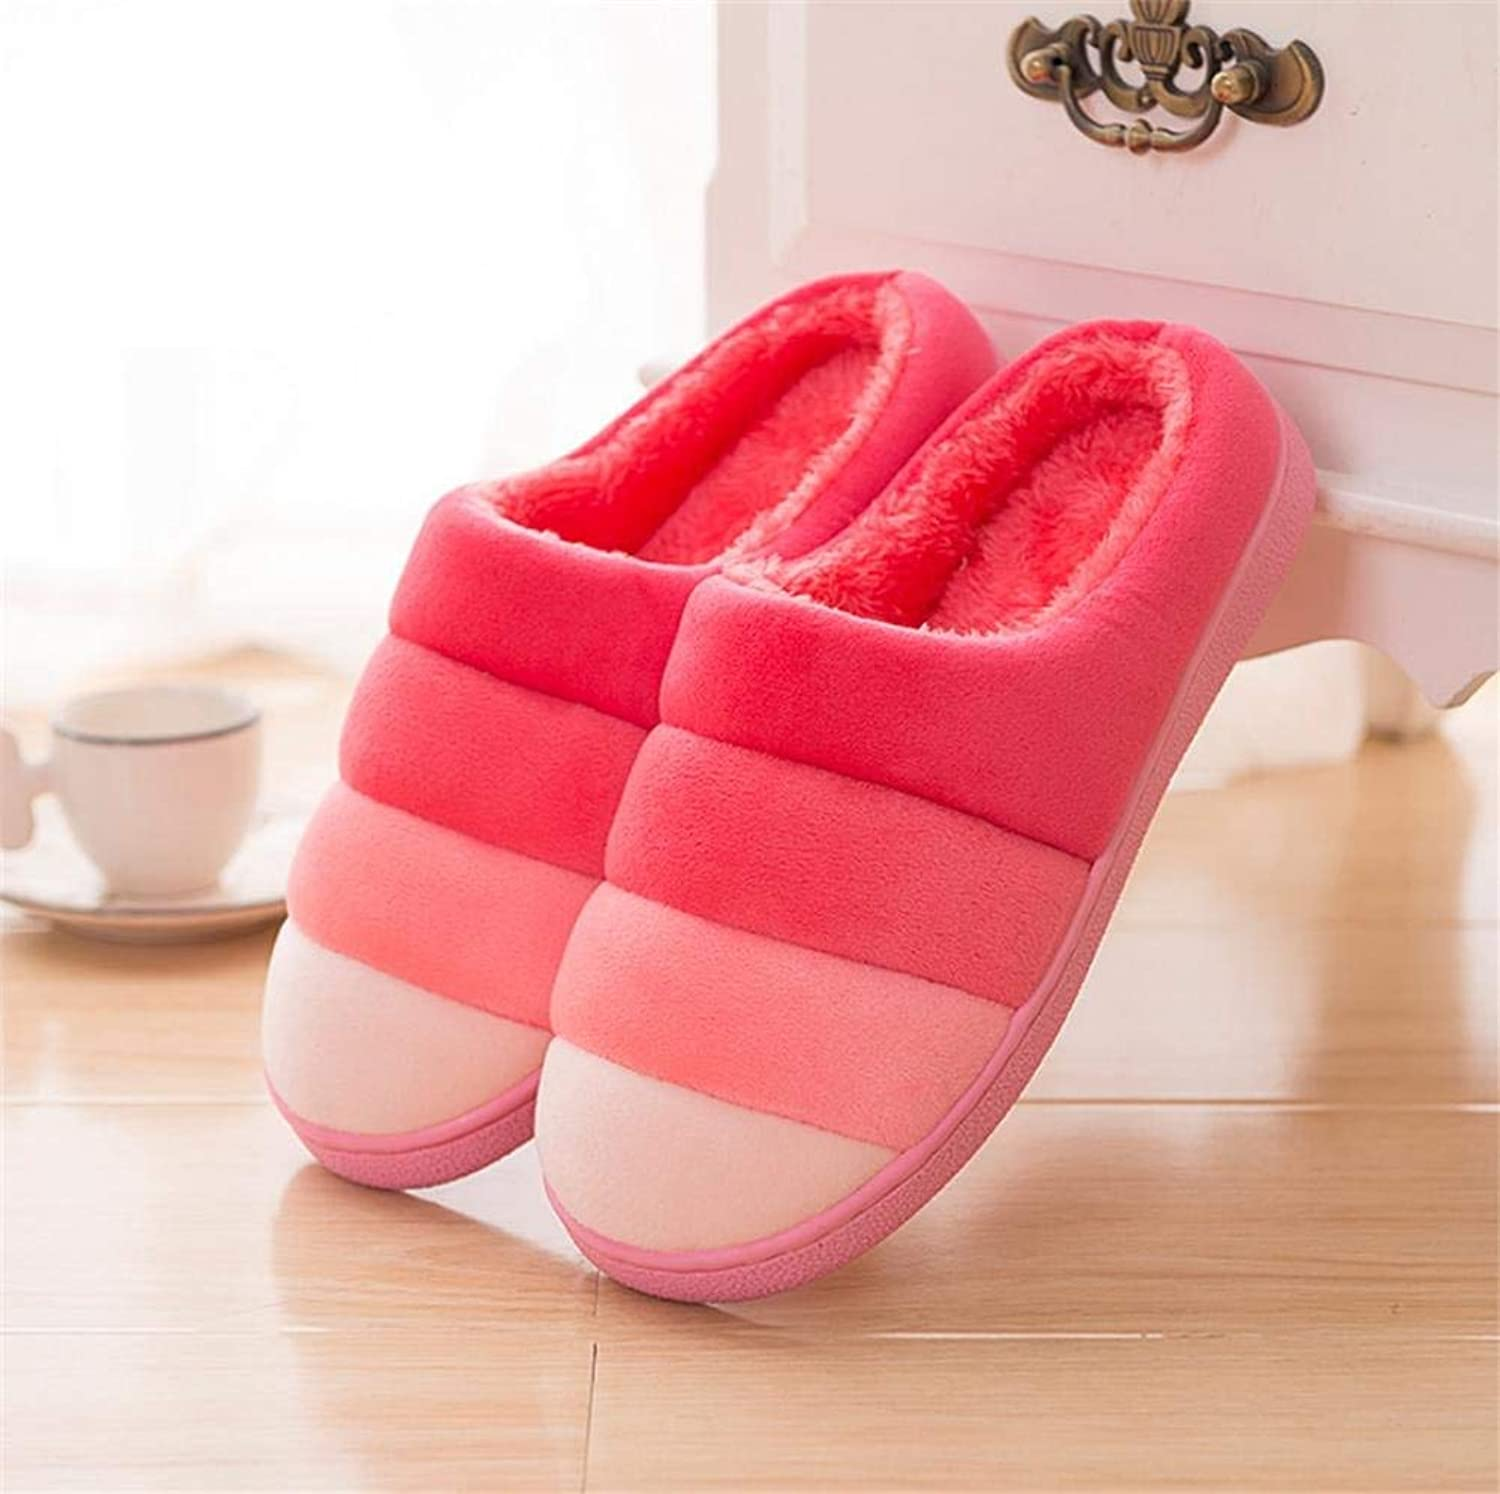 Lady Slippers Women 's Home Cotton Slippers Indoor Keep Warm Stripe Casual Slippers Pink Purple Red Mixed color Personality Quality for Women